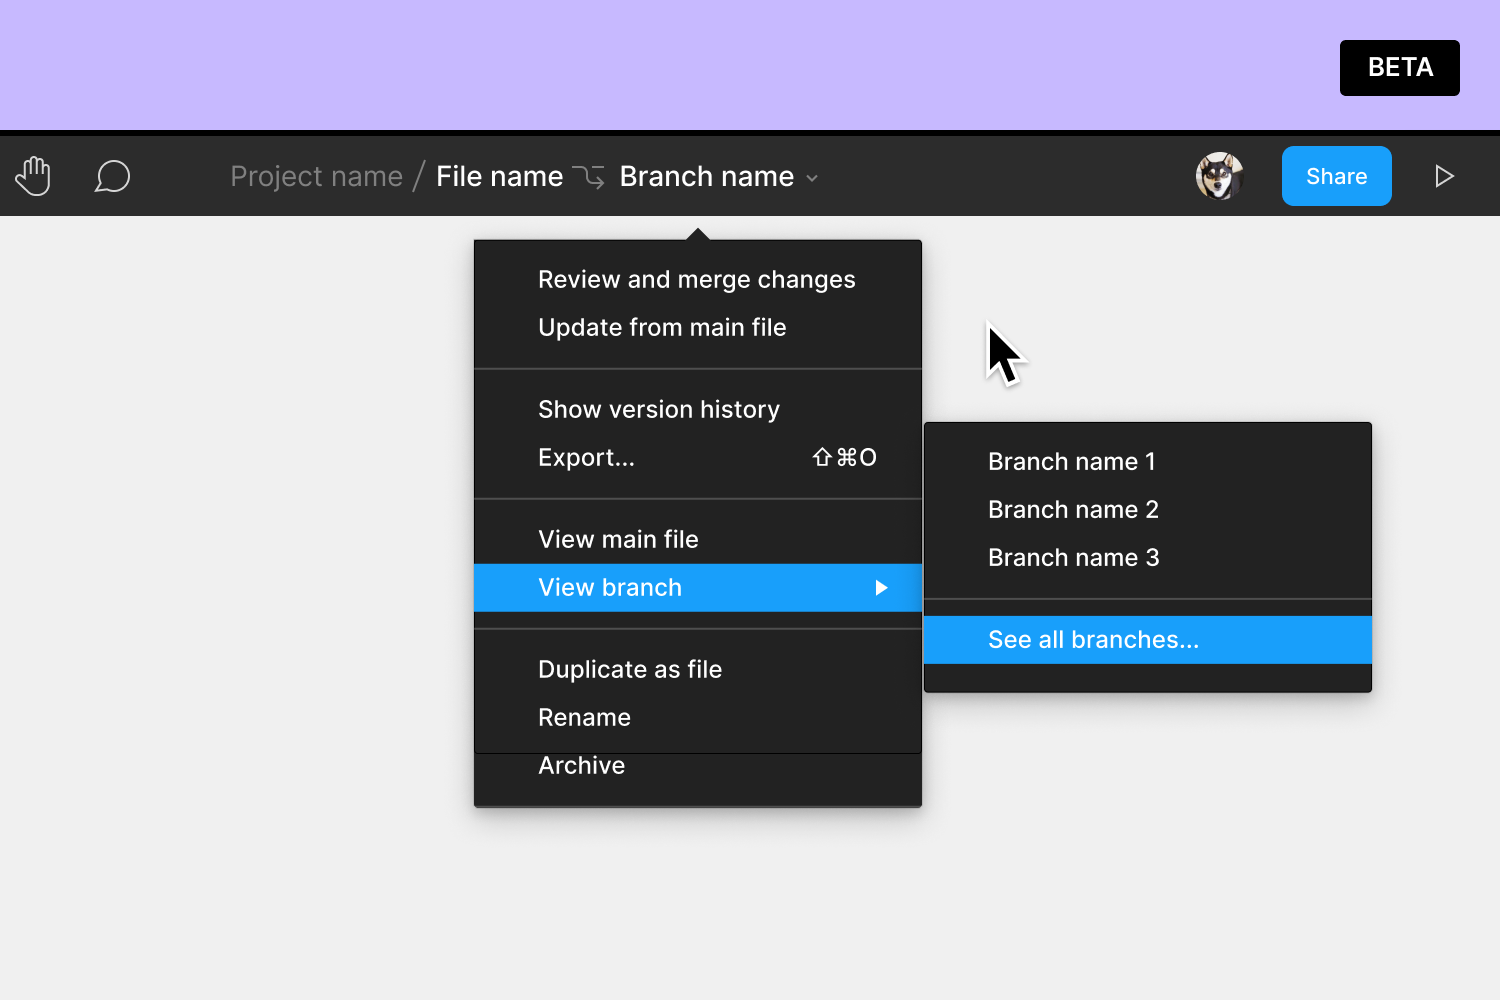 Expanded file name menu in the toolbar with view branch highlighted and a list of branches